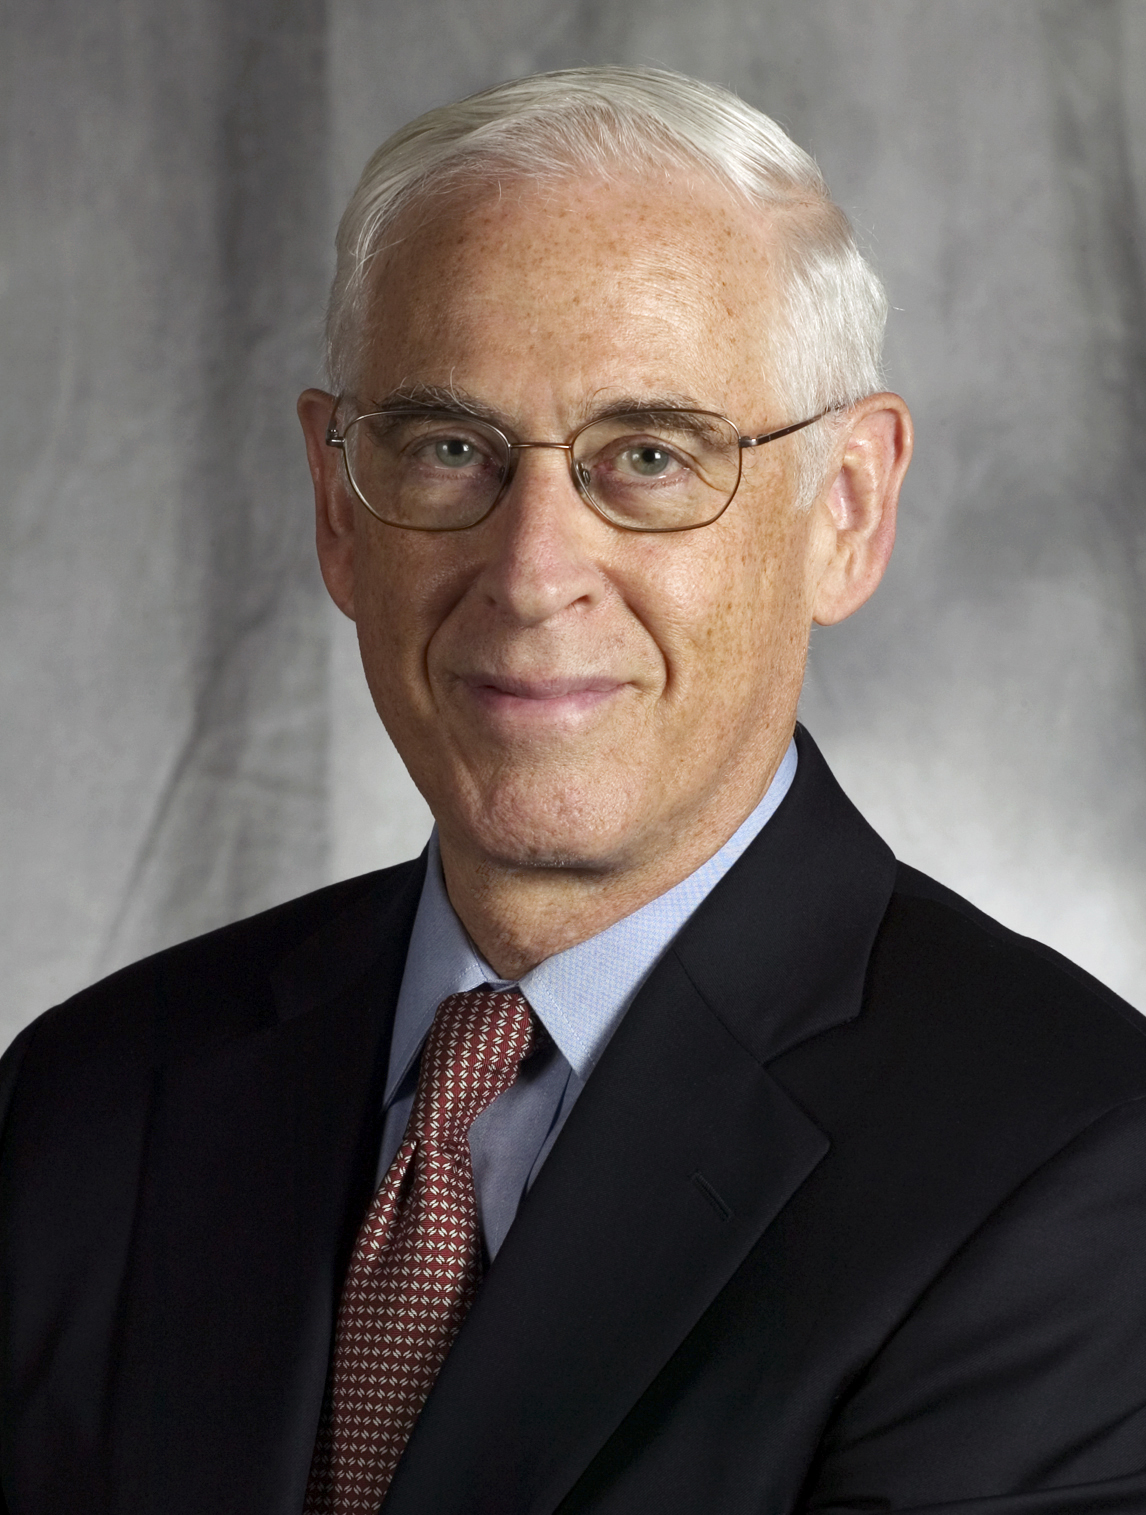 MD Anderson portrait of John Mendelsohn